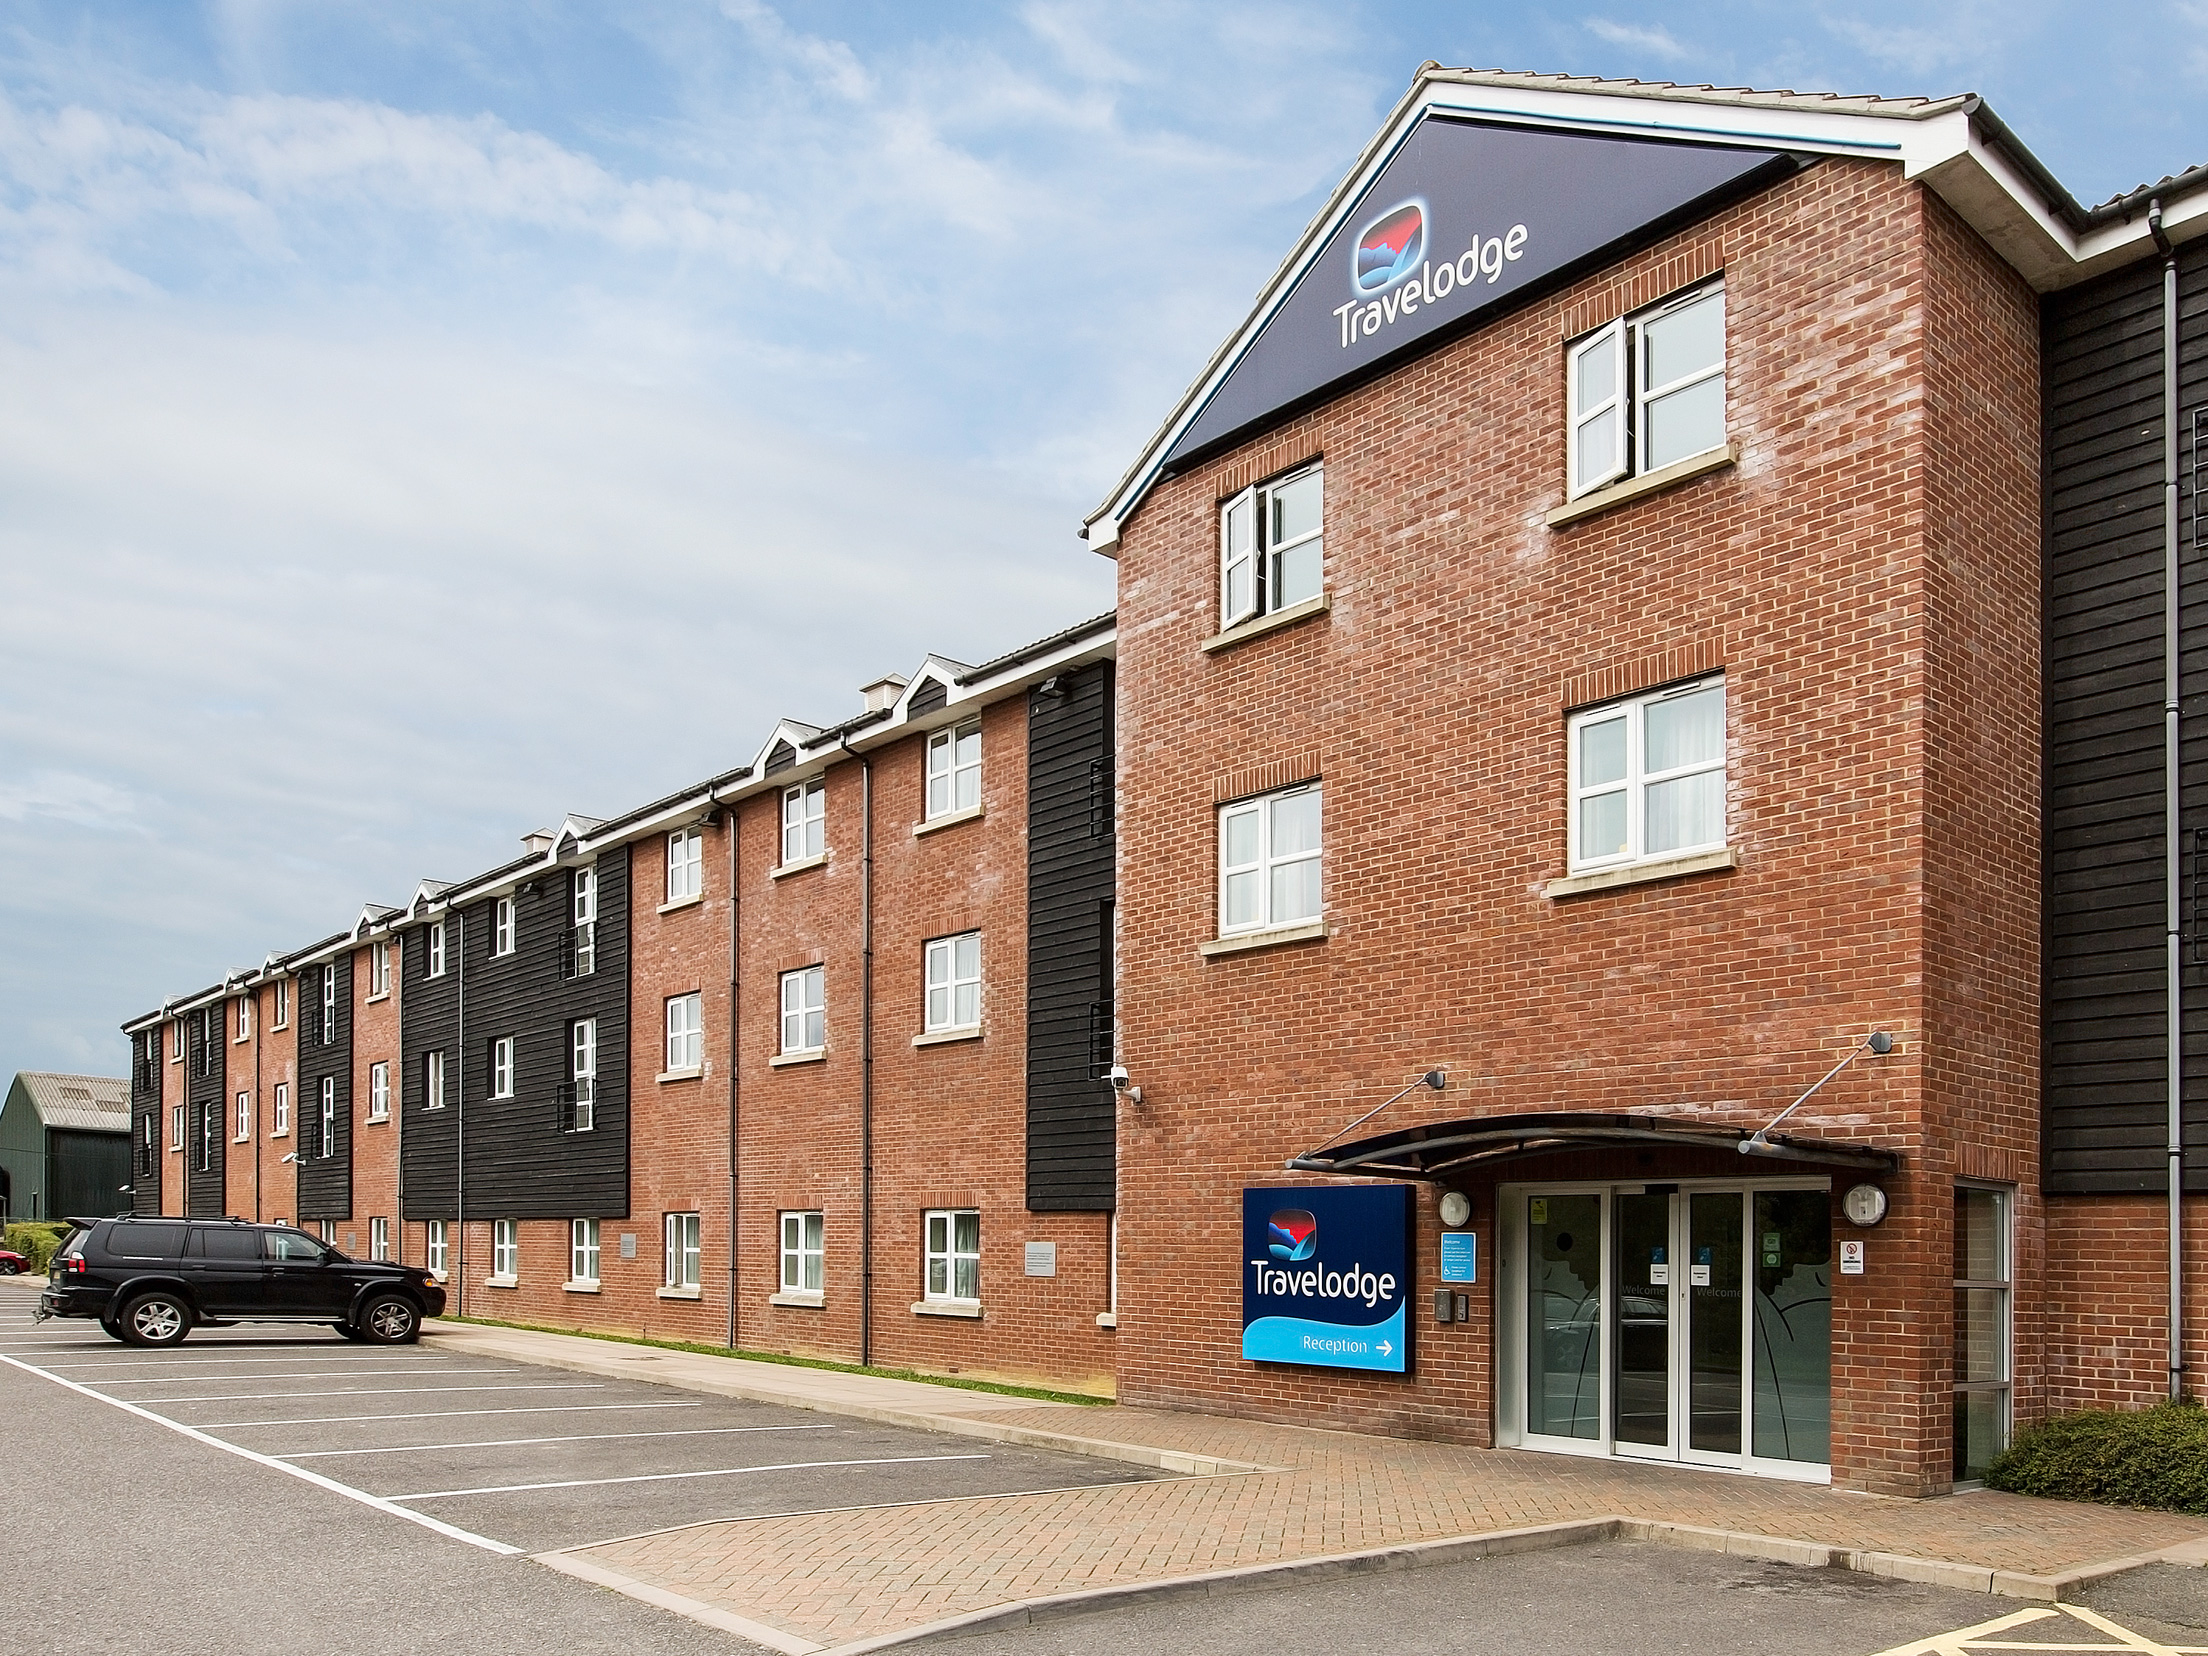 Travelodge Stansted Great Dunmow, Essex